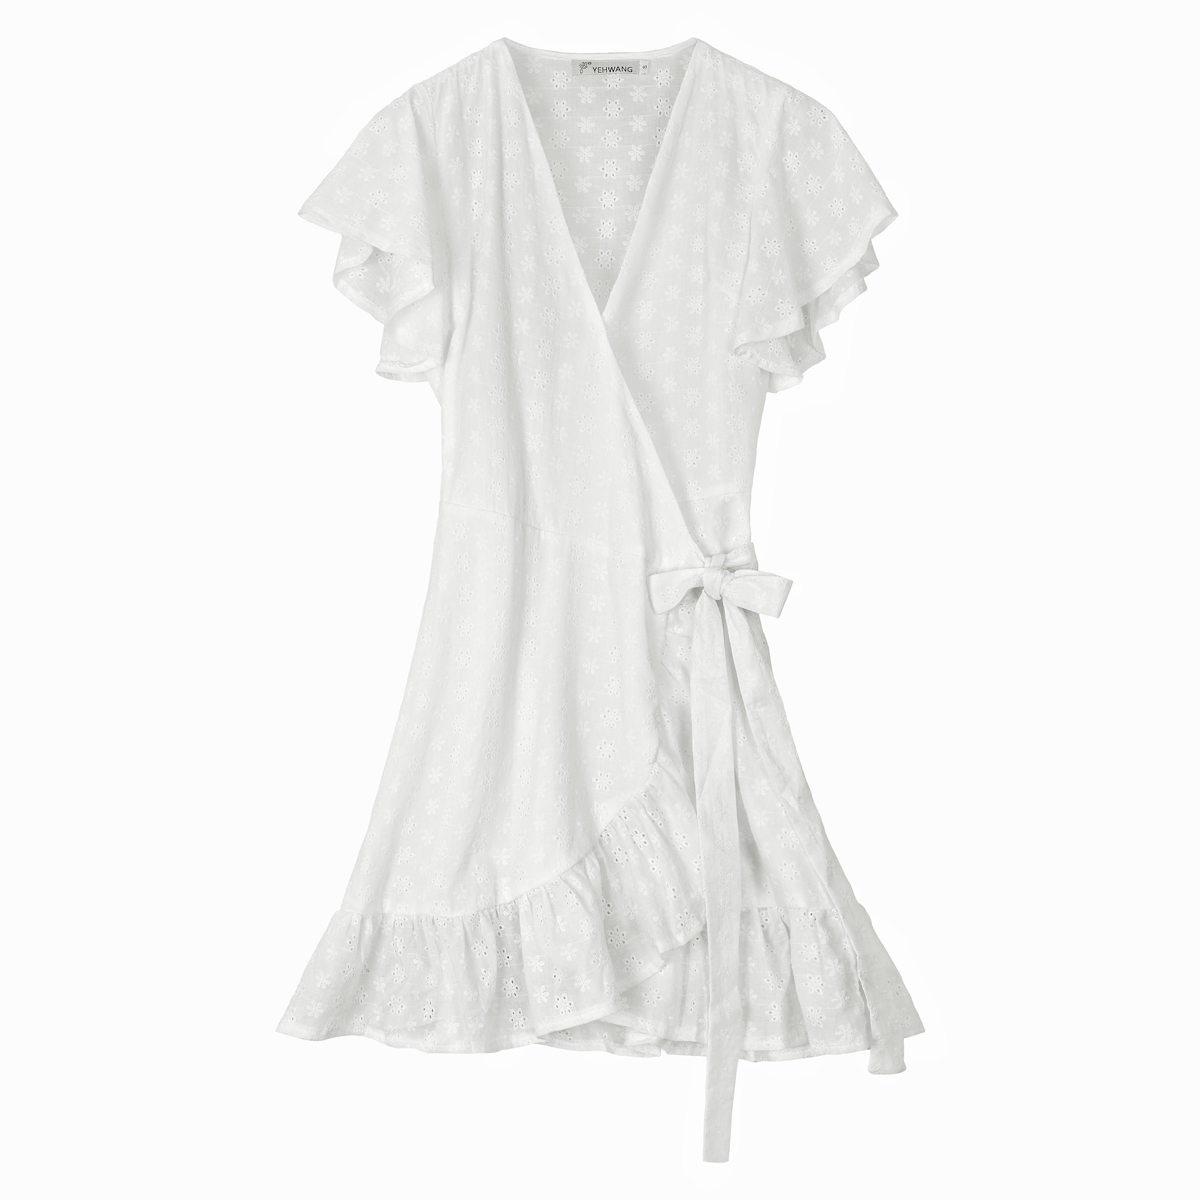 Broderie anglaise wickelkleid